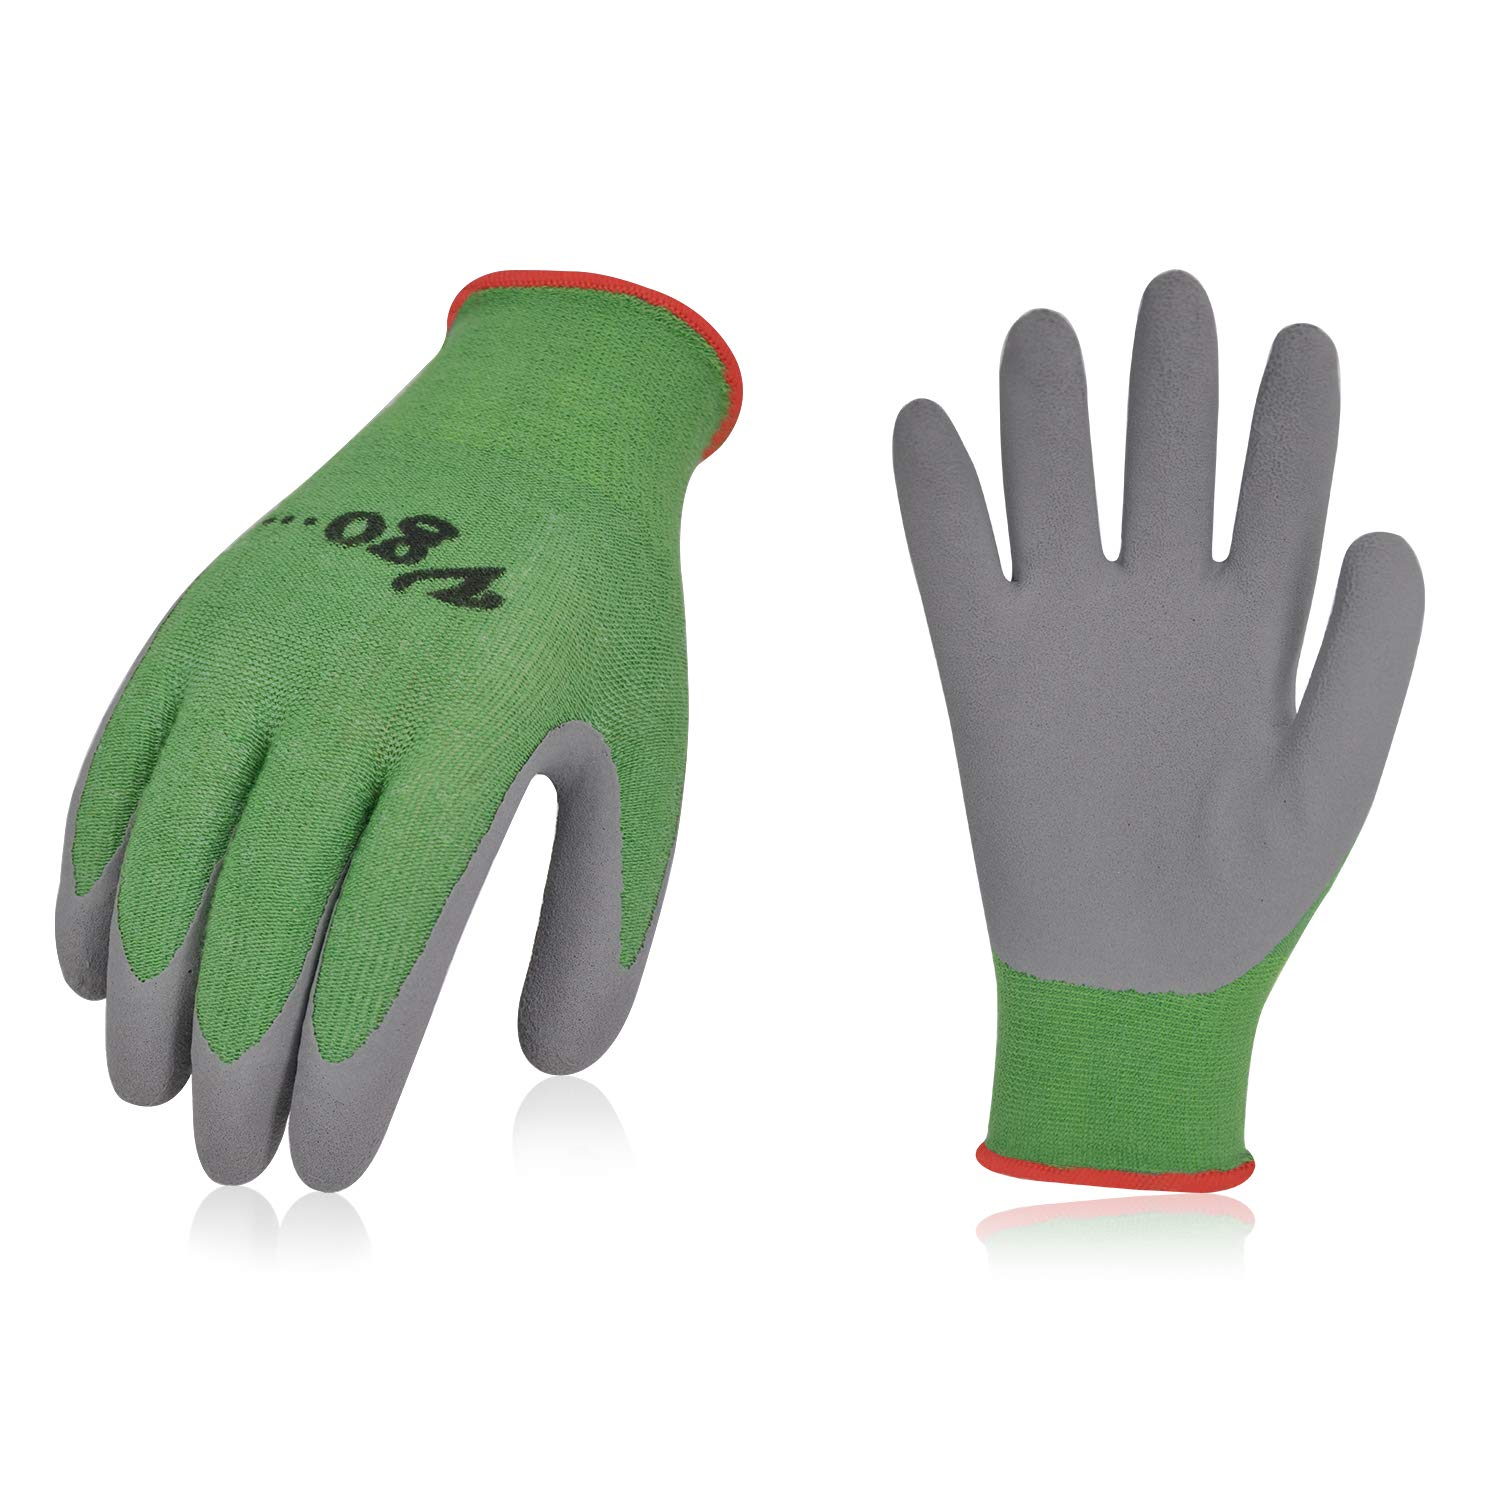 Vgo 2Pairs Kids Gloves for Age 3-5, Bamboo Work Gloves for Gardening, Green Environmental Features(Size XXXS,Green,KID-RB6026)